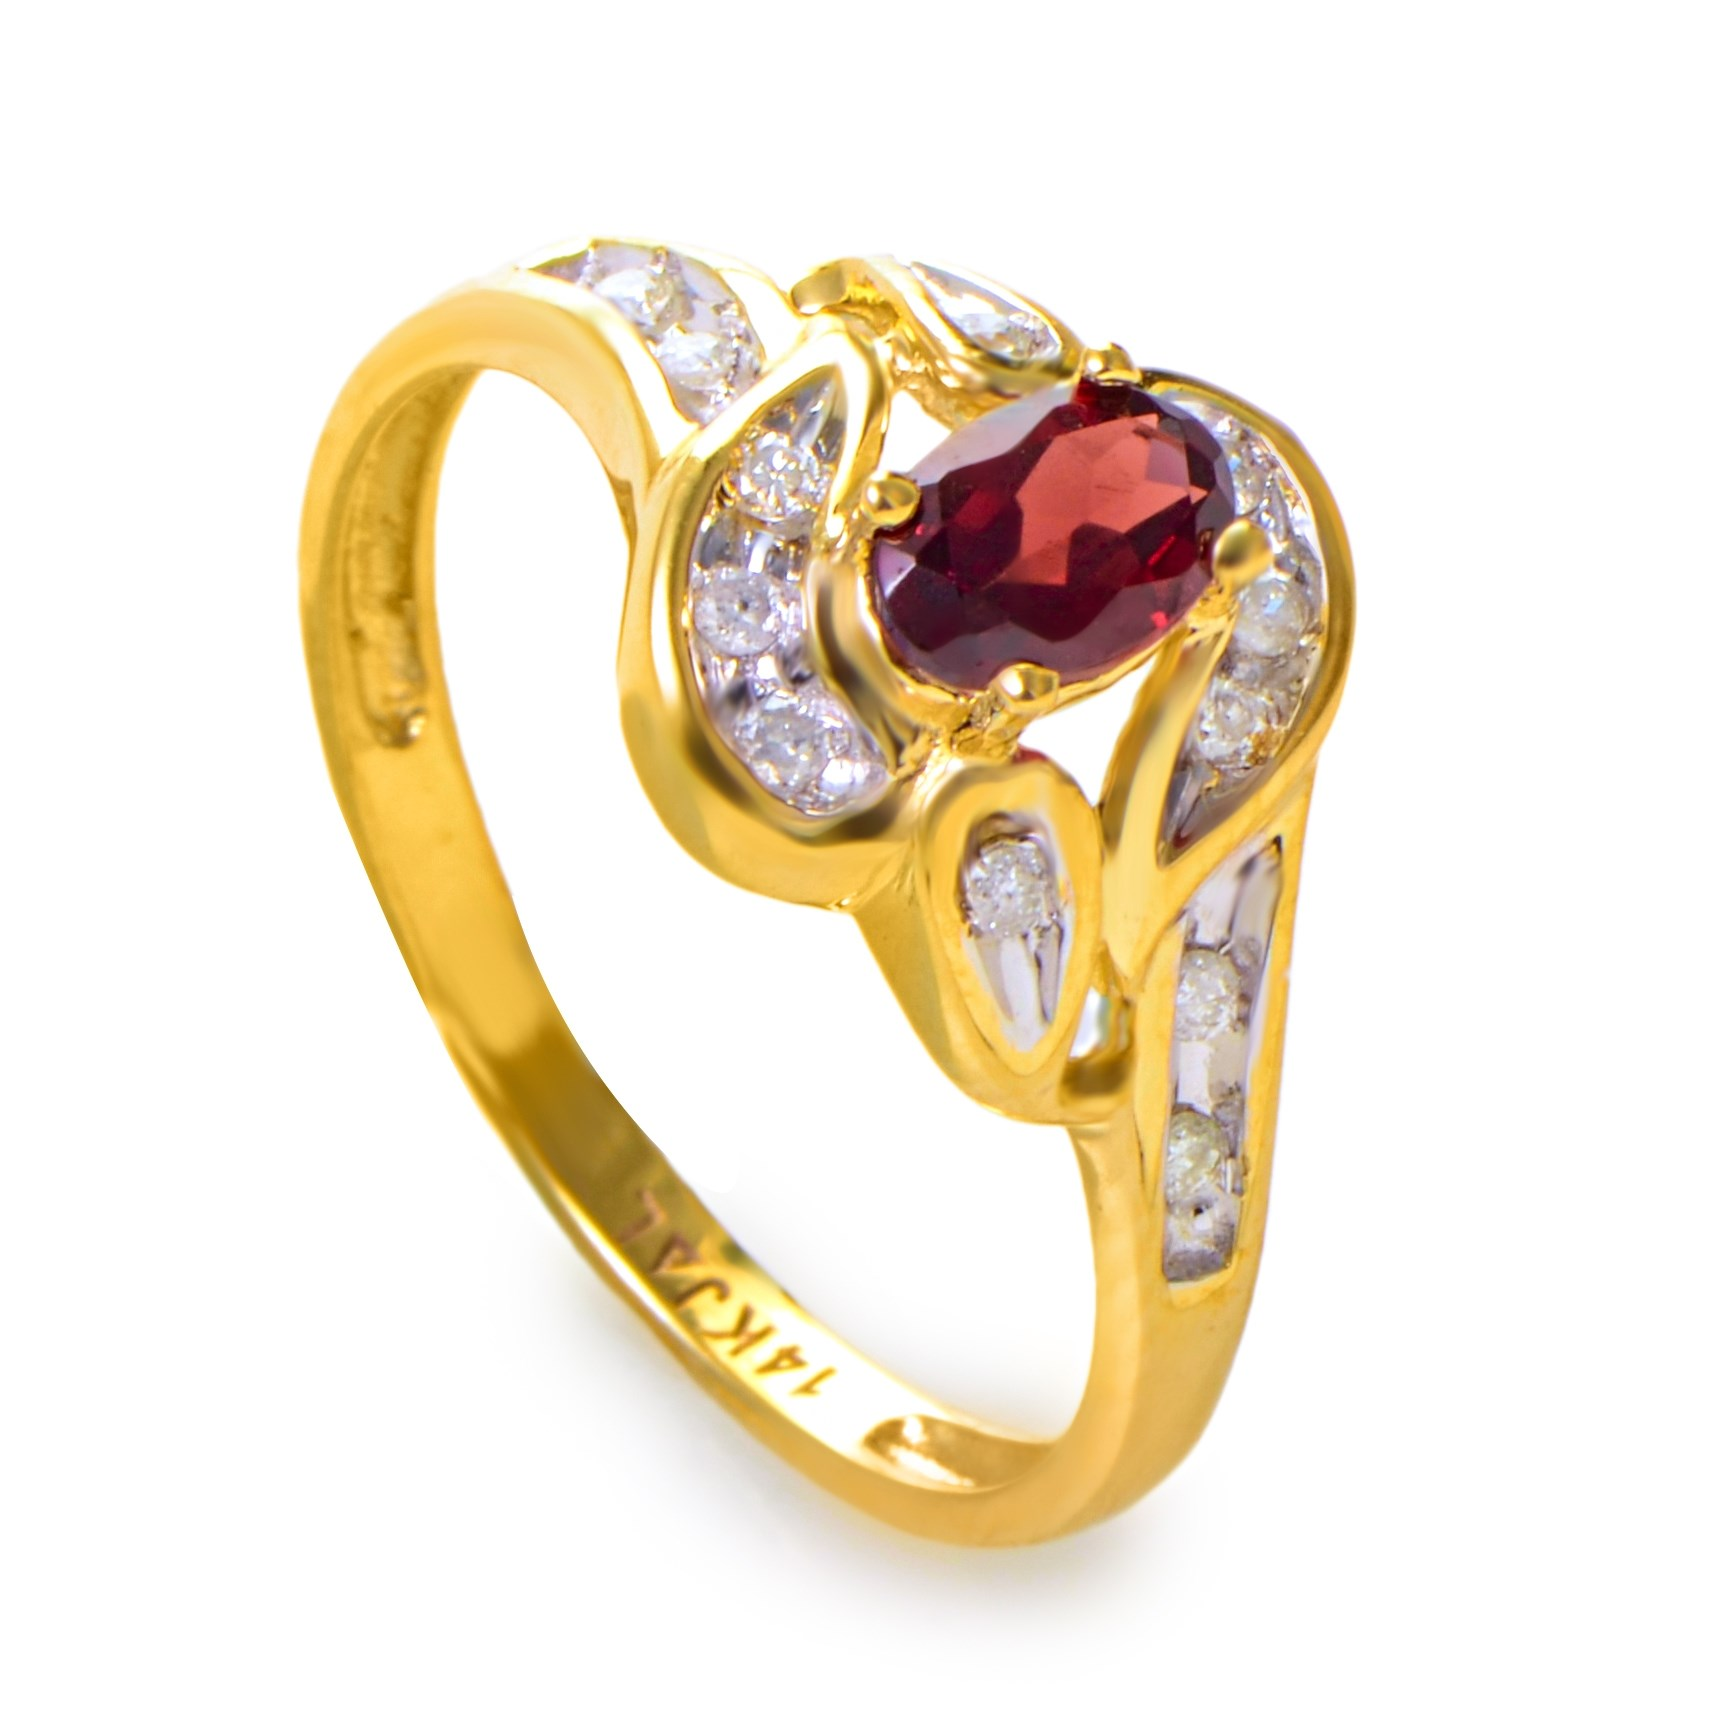 14K Yellow Gold Garnet Stone & Diamond Swirl Ring RM1544-5